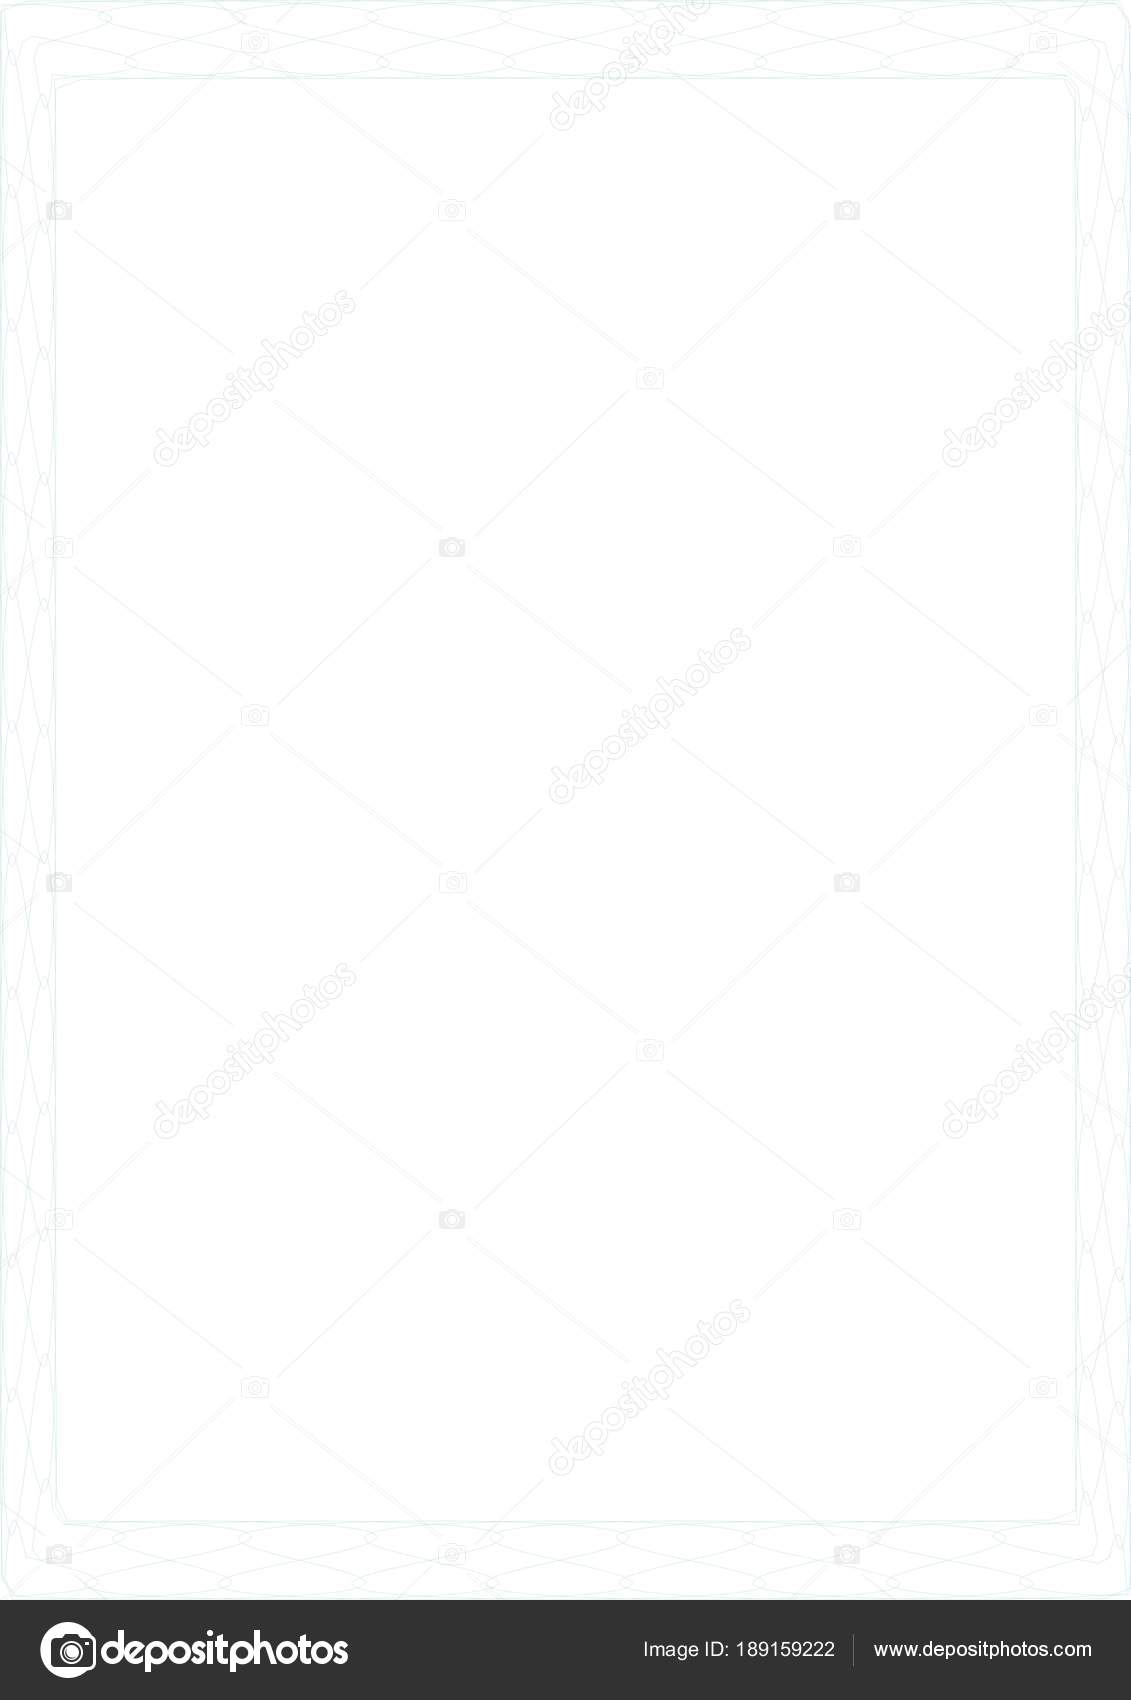 simple frame border clipart the simple frame border vector illustration by annagolant stock